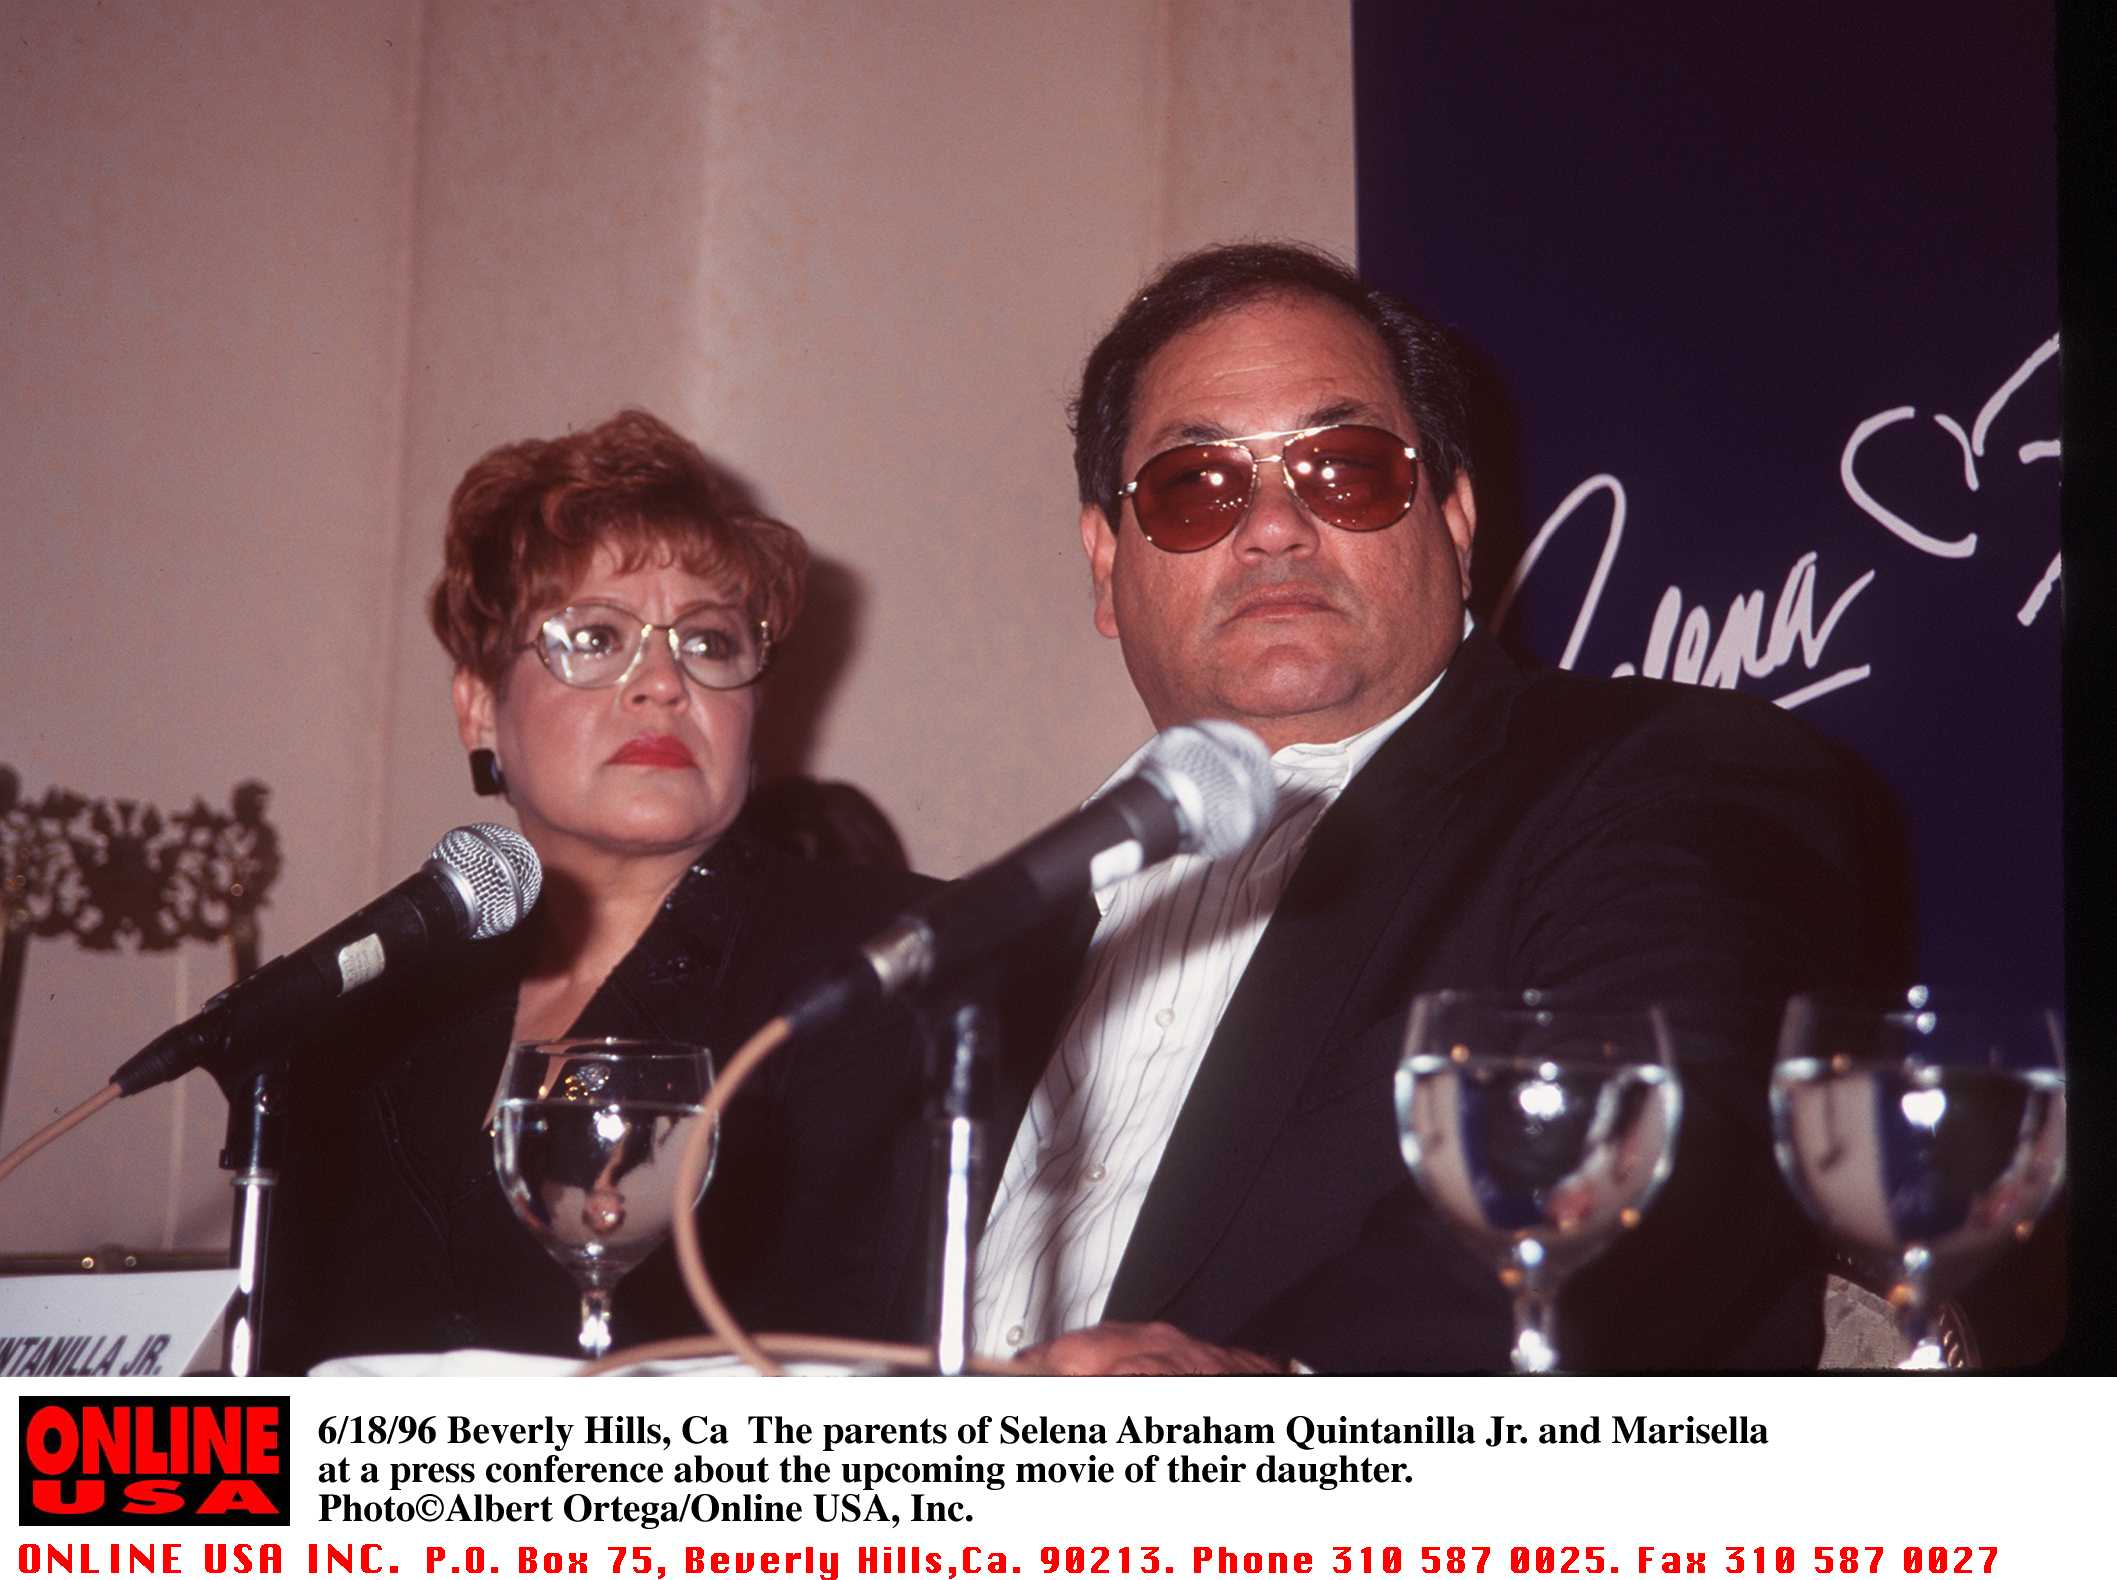 The parents of Selena Abraham, Quintanilla Jr. and Marisella, at a press confrence regarding a movie based on their daughter on June 18, 1996 (Source: Getty Images)